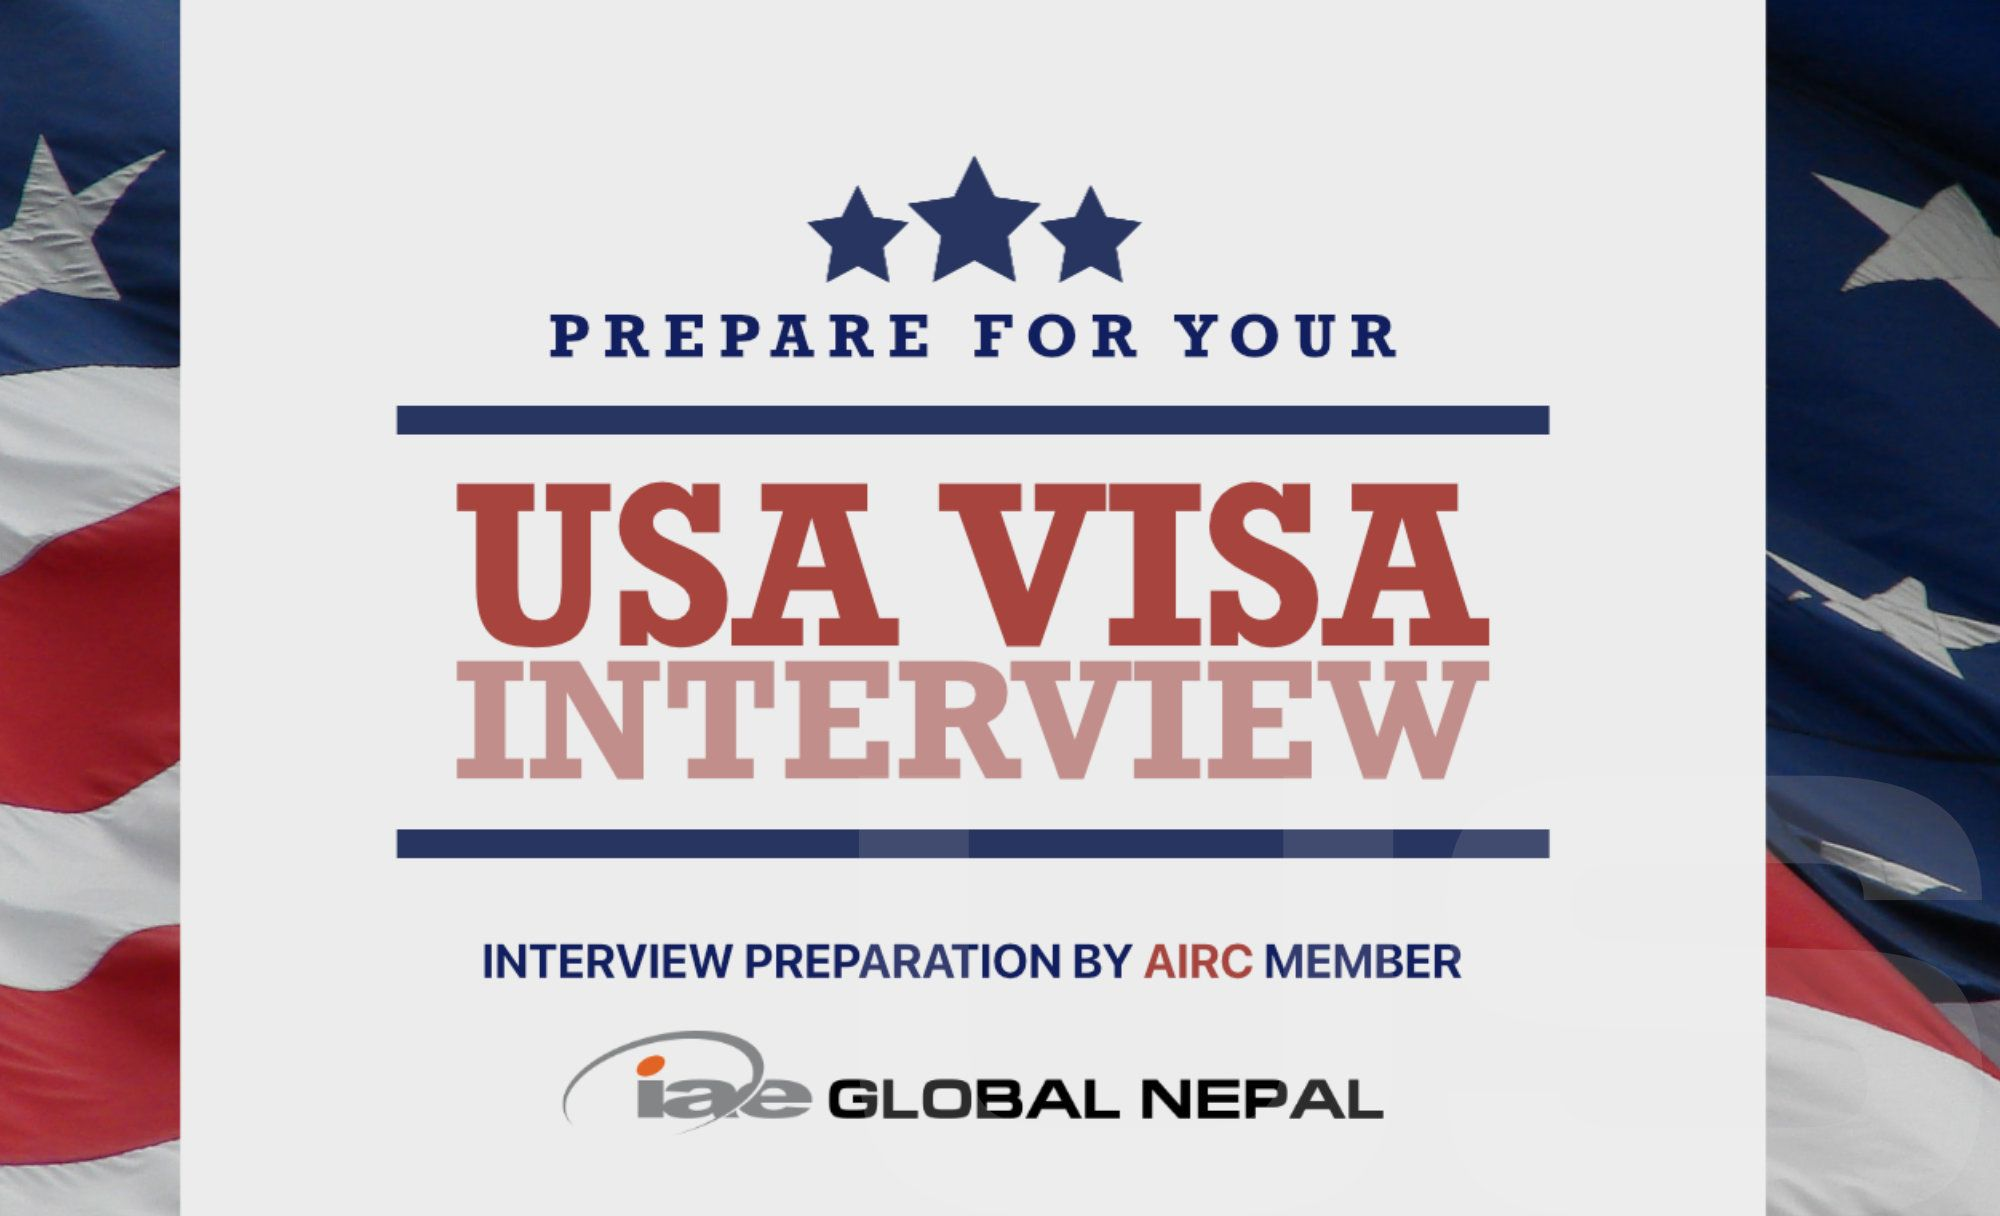 🇺🇸 Prepare for your US visa interview